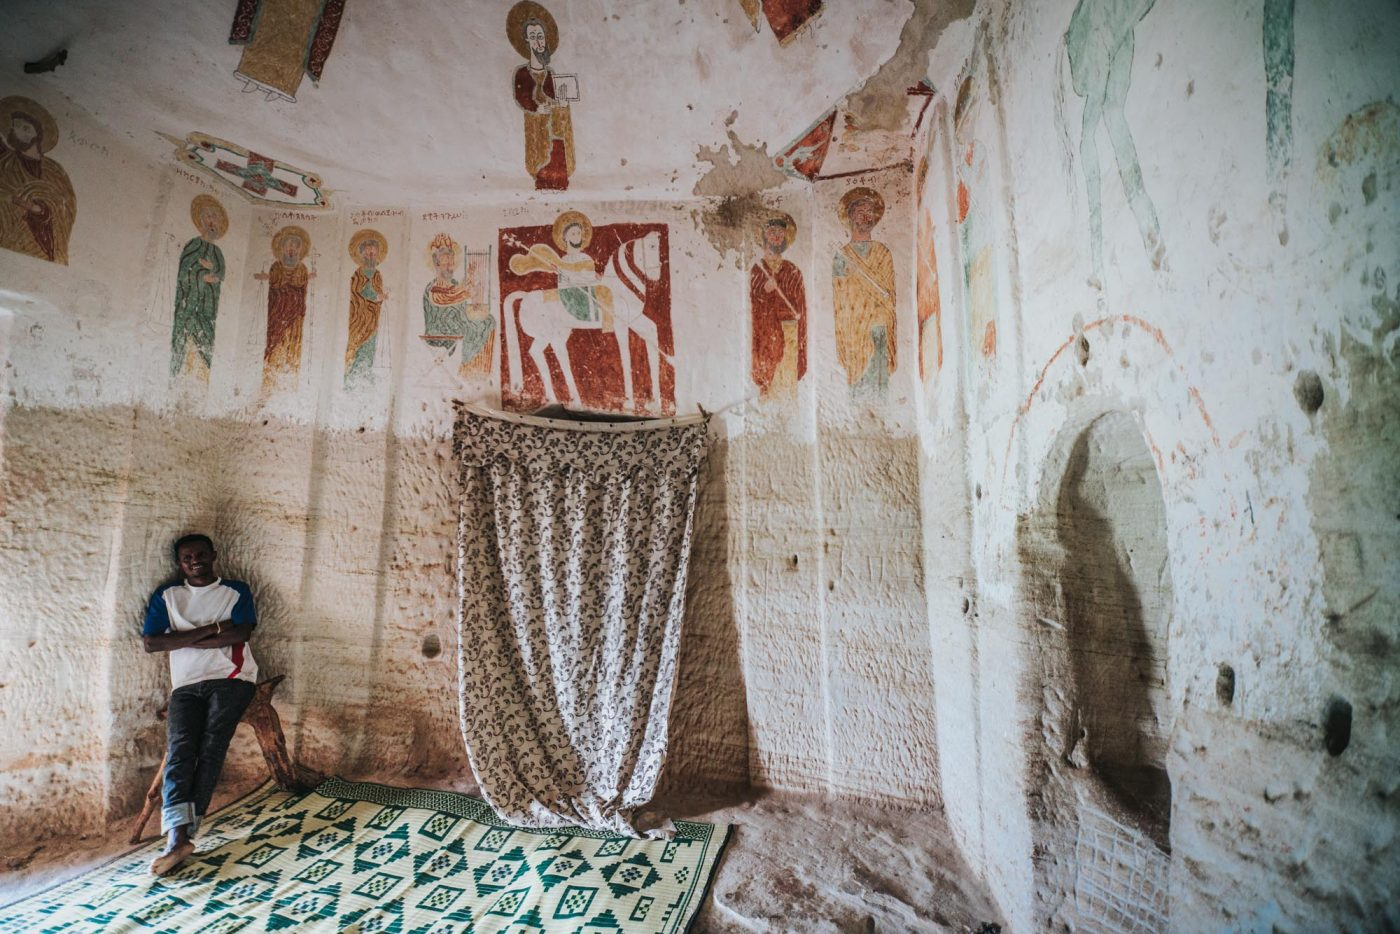 Inside Maryam Kotor church, Gheralta, Tigray Region